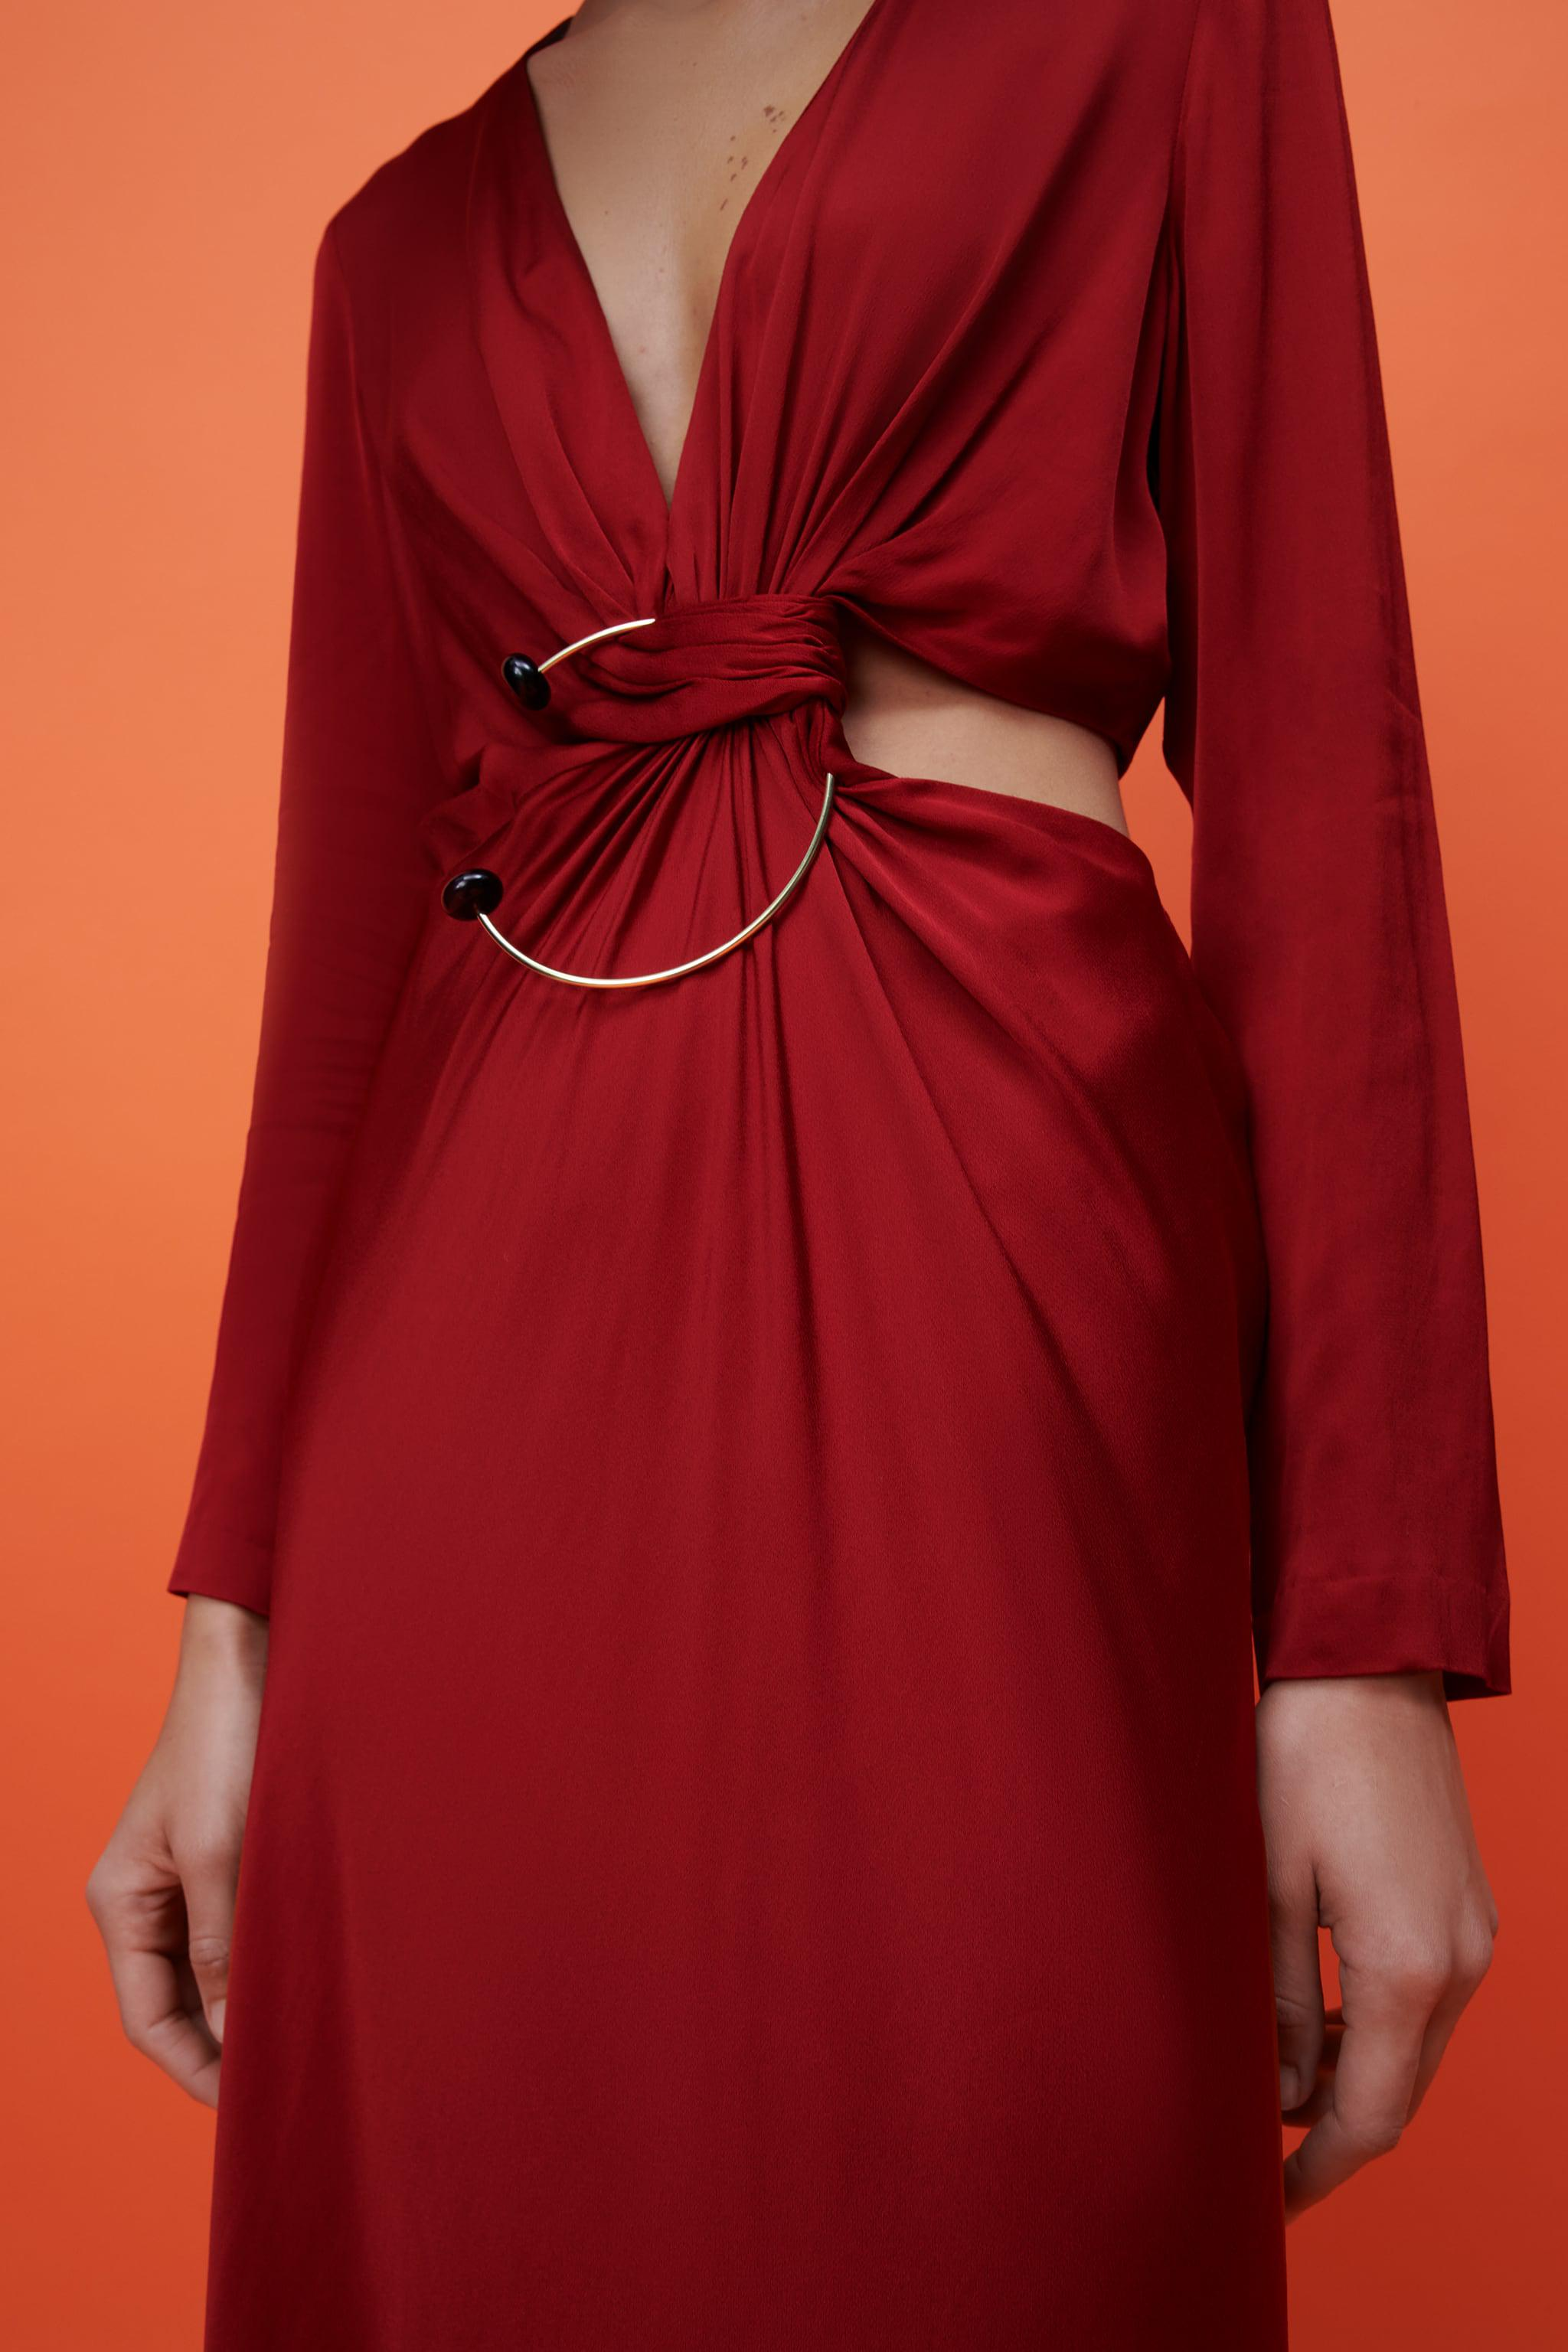 CUT OUT DRESS LIMITED EDITION 2